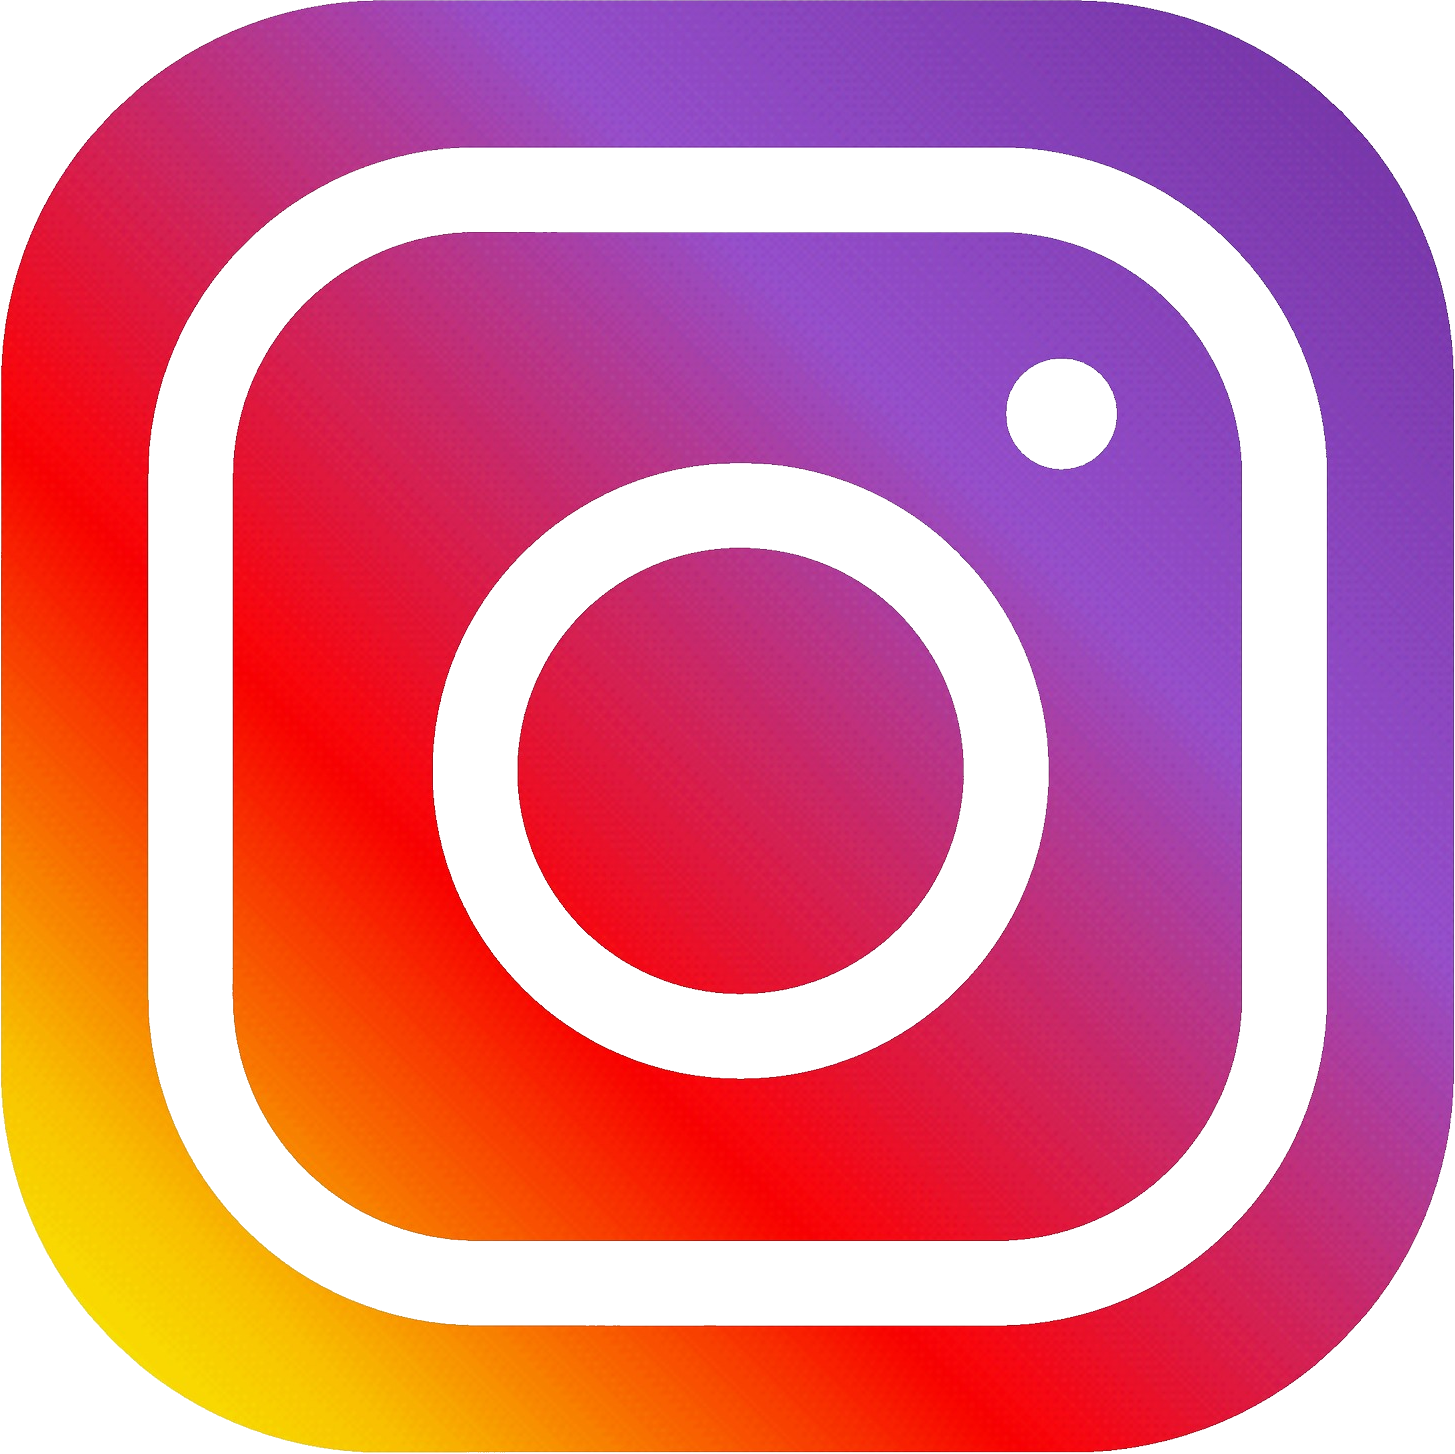 Instagram clipart app graphic royalty free library When you log onto to Instagram today, please Follow and Like our ... graphic royalty free library